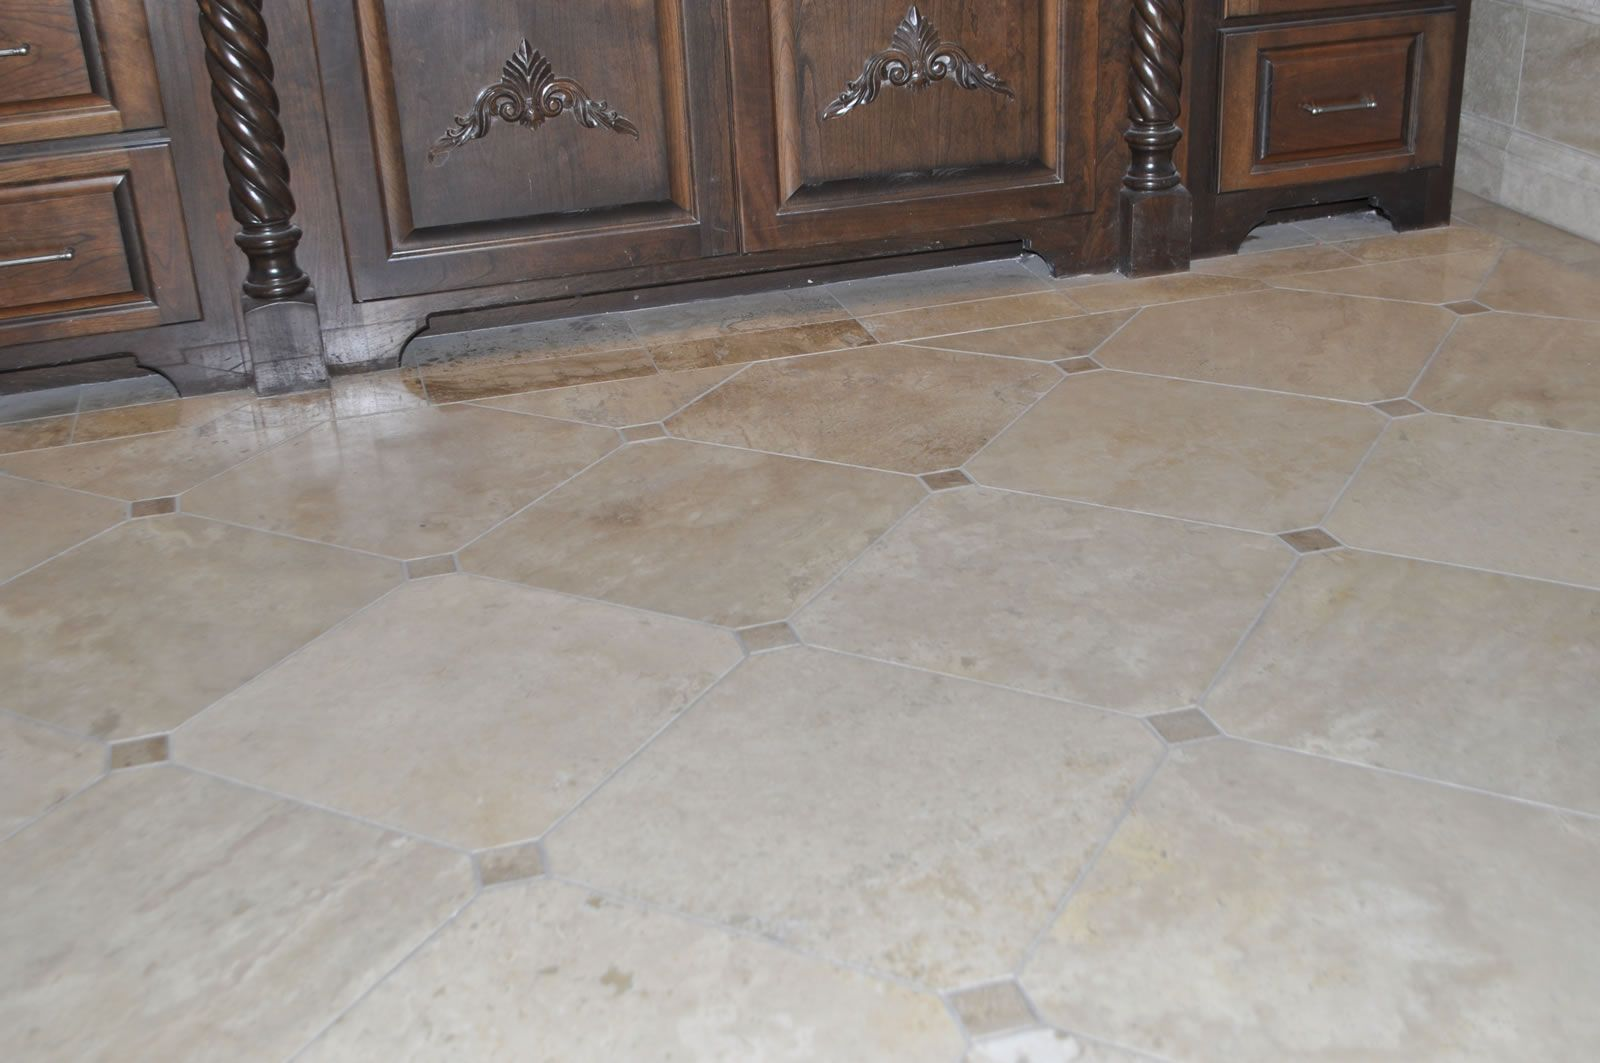 Porcelain tile in living room ceramic porcelain stone mosaic floor tile flooring ceramic Ceramic stone tile